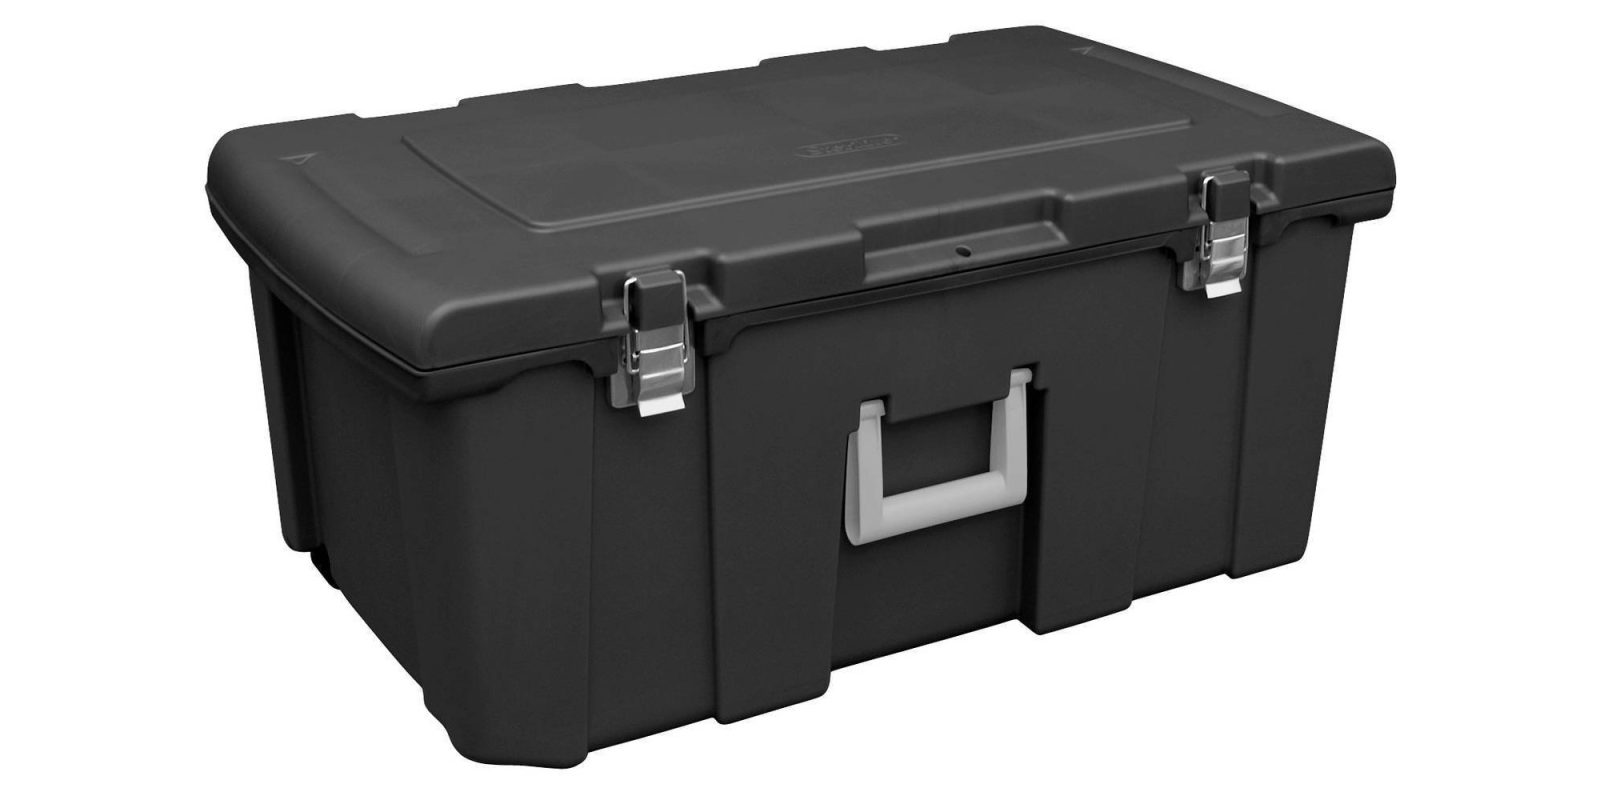 Sterilite's 16-gallon Storage Trunk is down to $20 (More than 30% off)